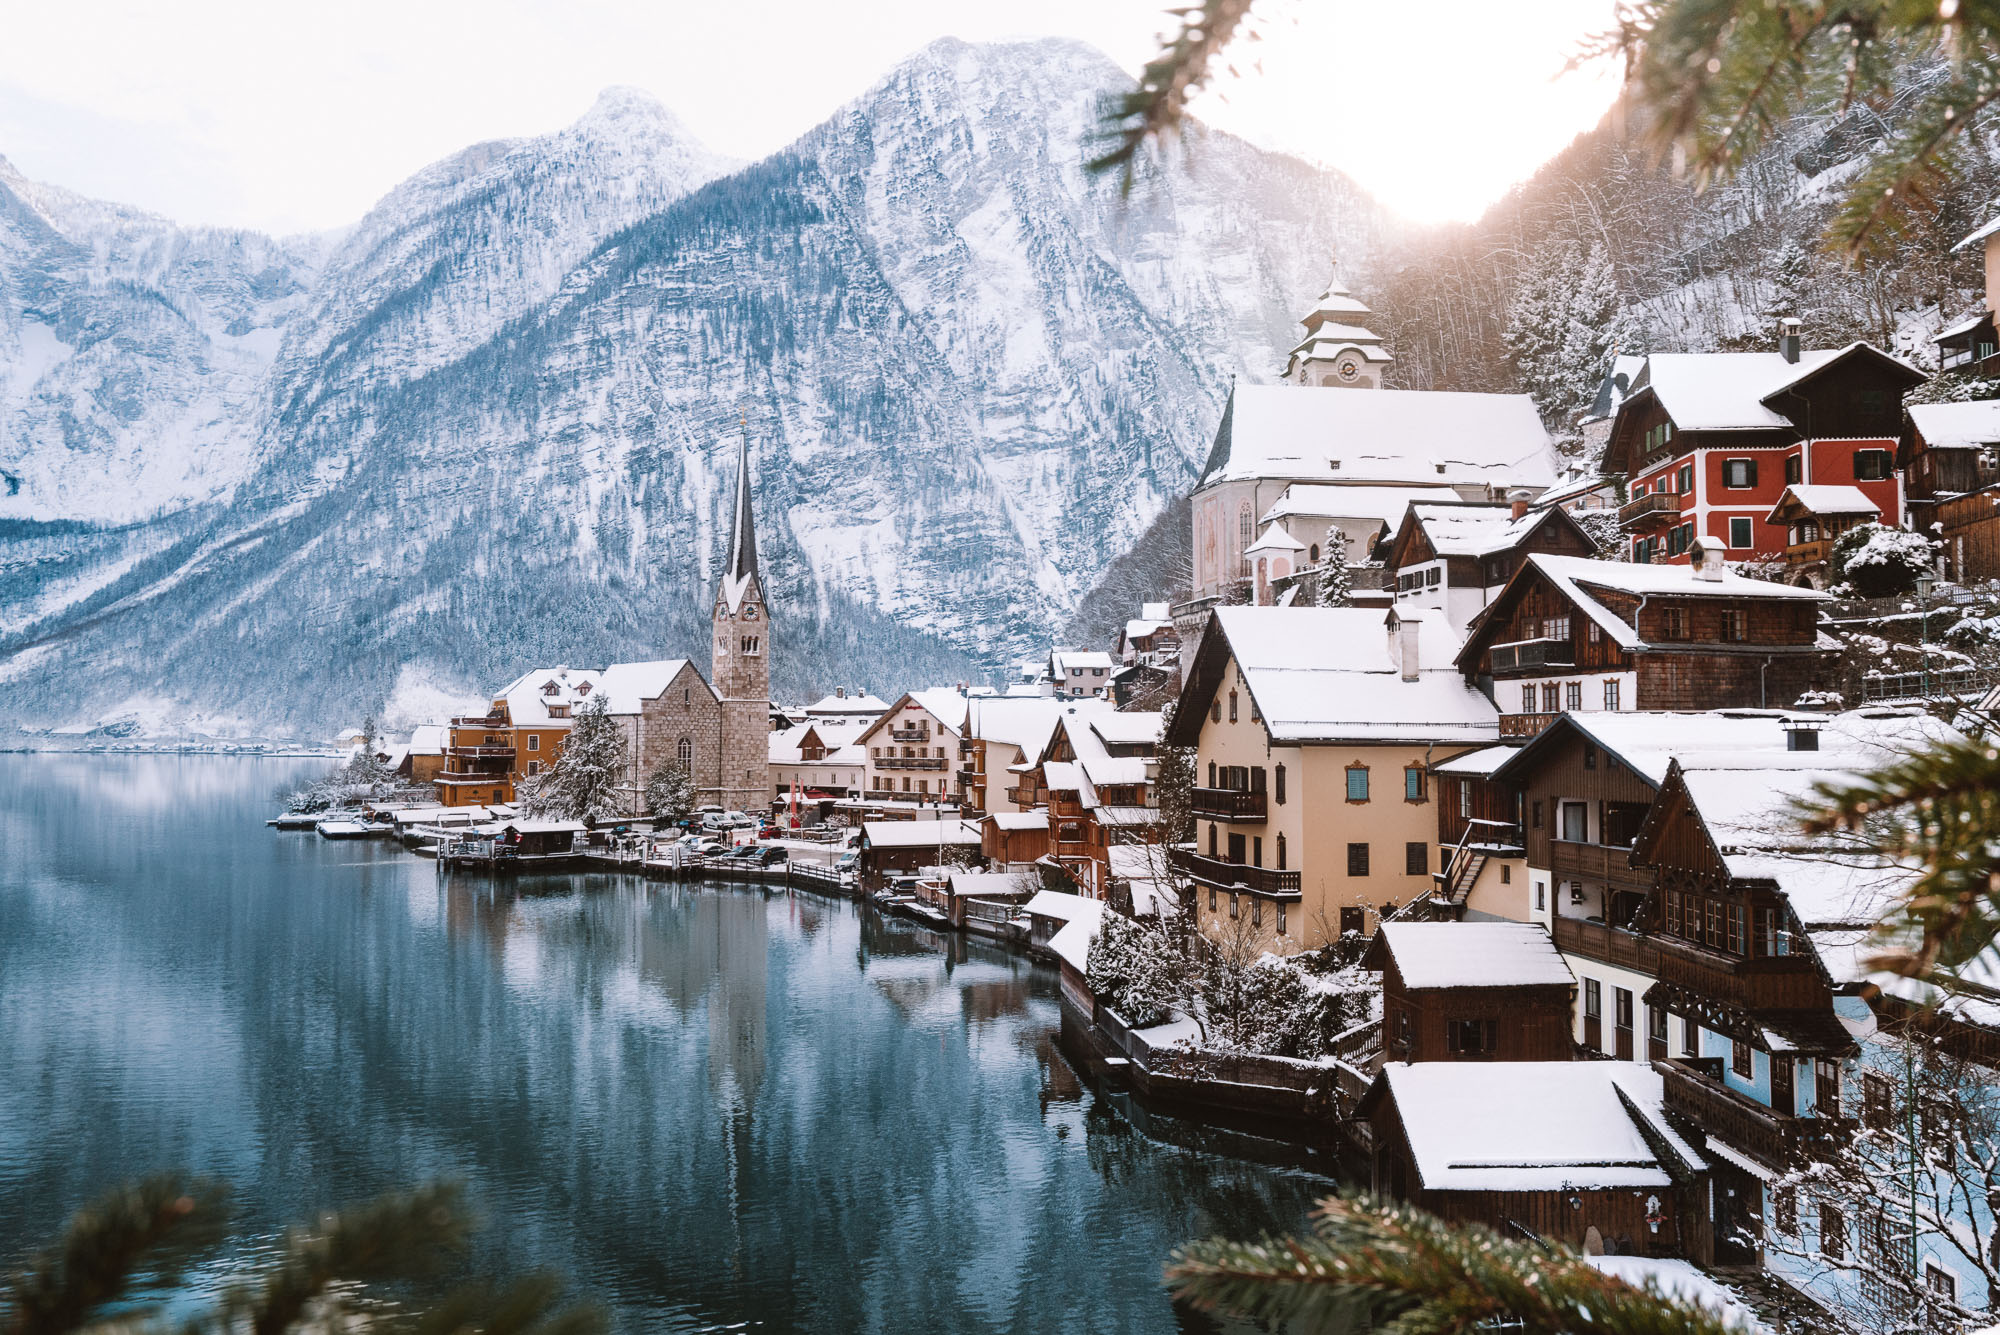 Hallstatt Austria view in winter of church and lake in the snow